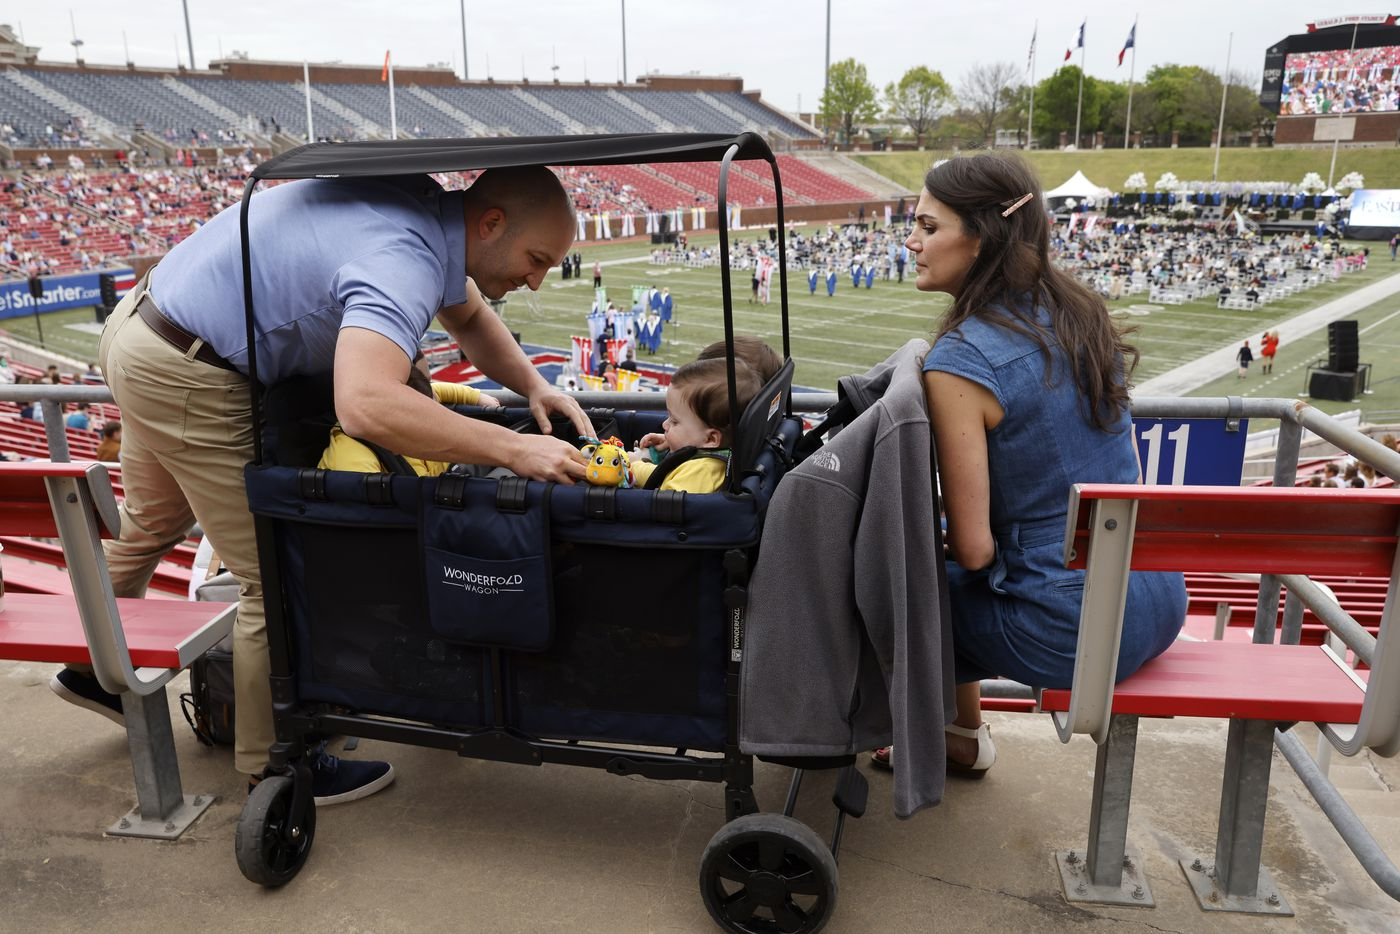 Chris Marr grabs a toy that Hudson Marr dropped in front of Hardy, Harrison and Henry Marr as Jenny Marr looks on during the Highland Park United Methodist Church Easter service held at Gerald J. Ford Stadium on Sunday, April 4, 2021 in Dallas.